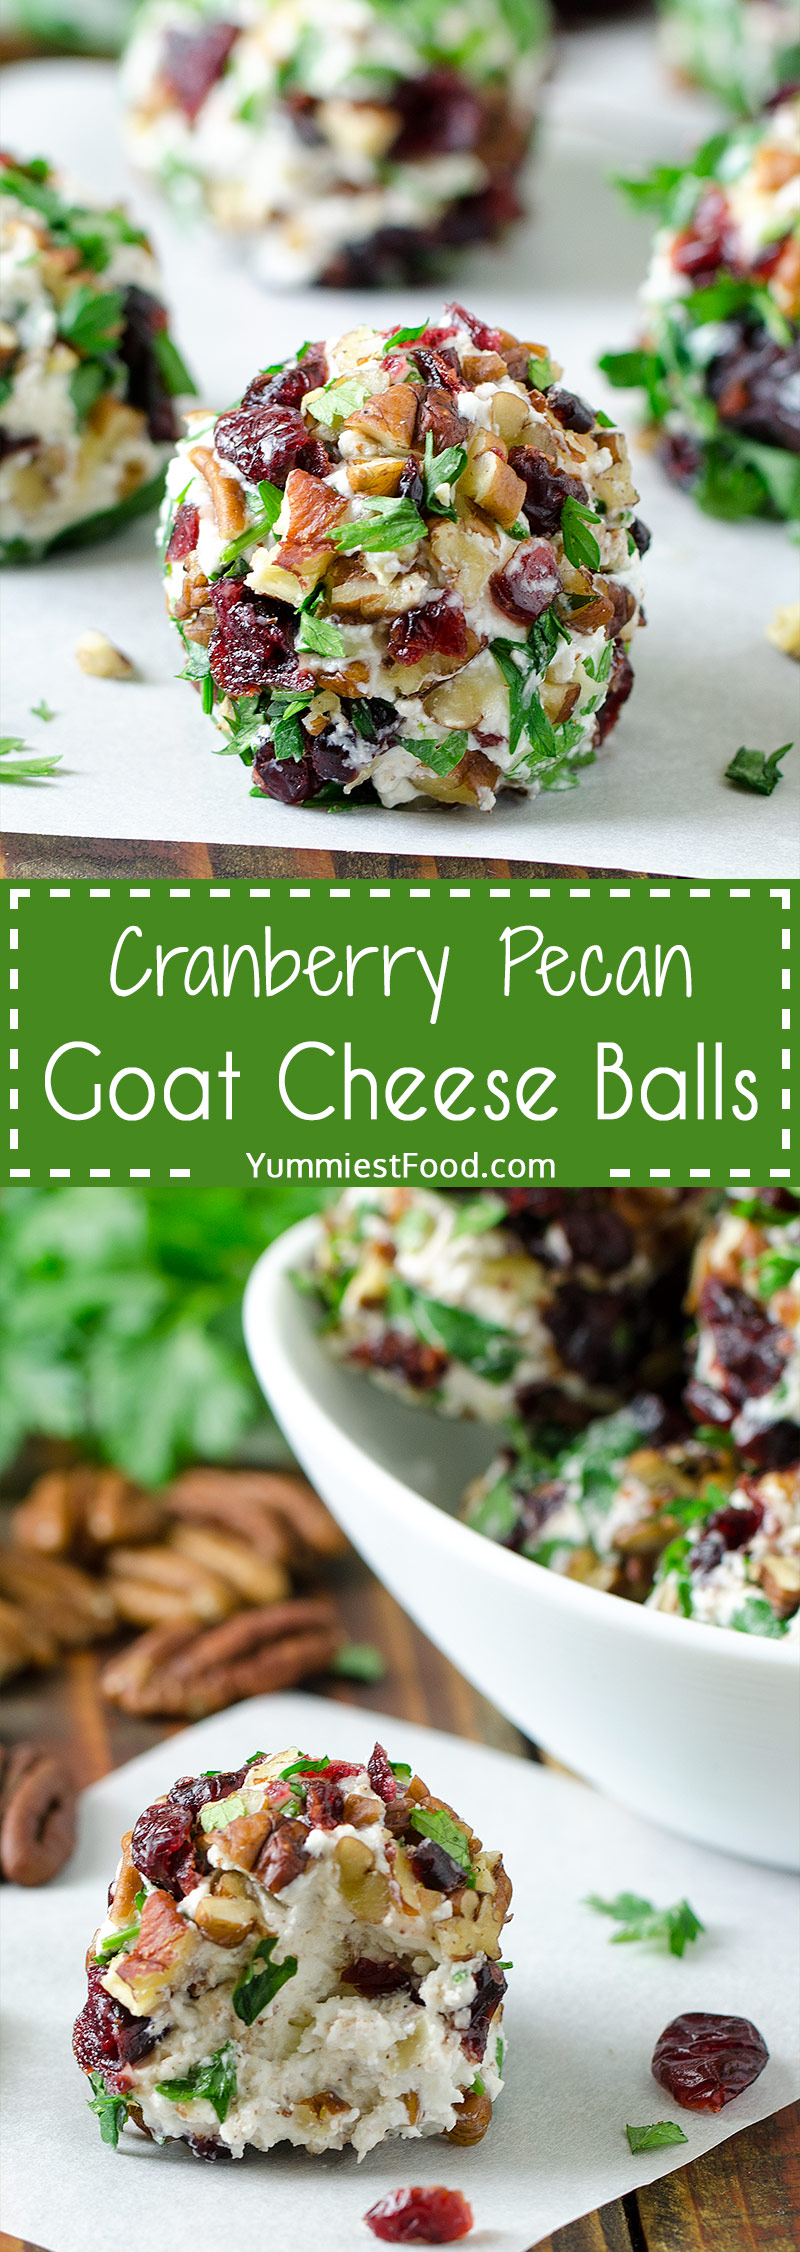 CRANBERRY PECAN GOAT CHEESE BALLS - Quick, easy and totally delicious festive holiday appetizer. Perfect for Christmas, New Year's Eve or any Holiday events